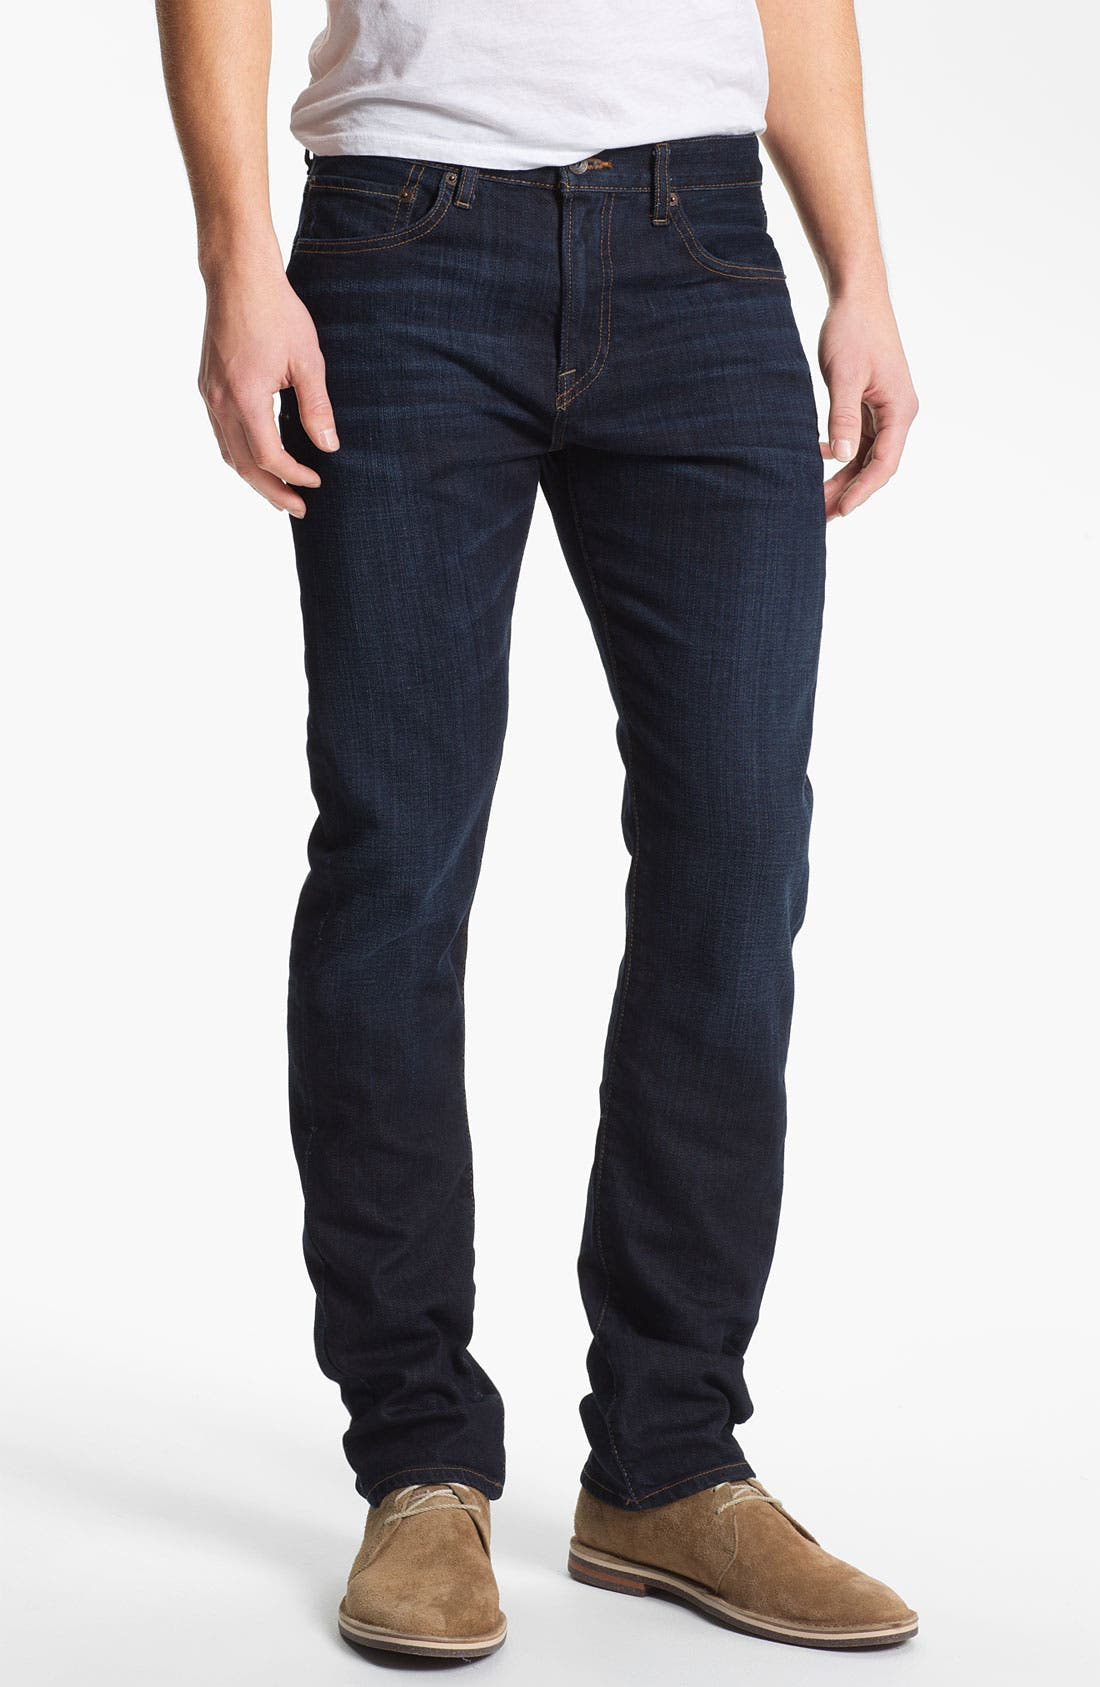 Alternate Image 1 Selected - Lucky Brand 'Dean' Straight Leg Jeans (Dark Stevie) (Online Only)